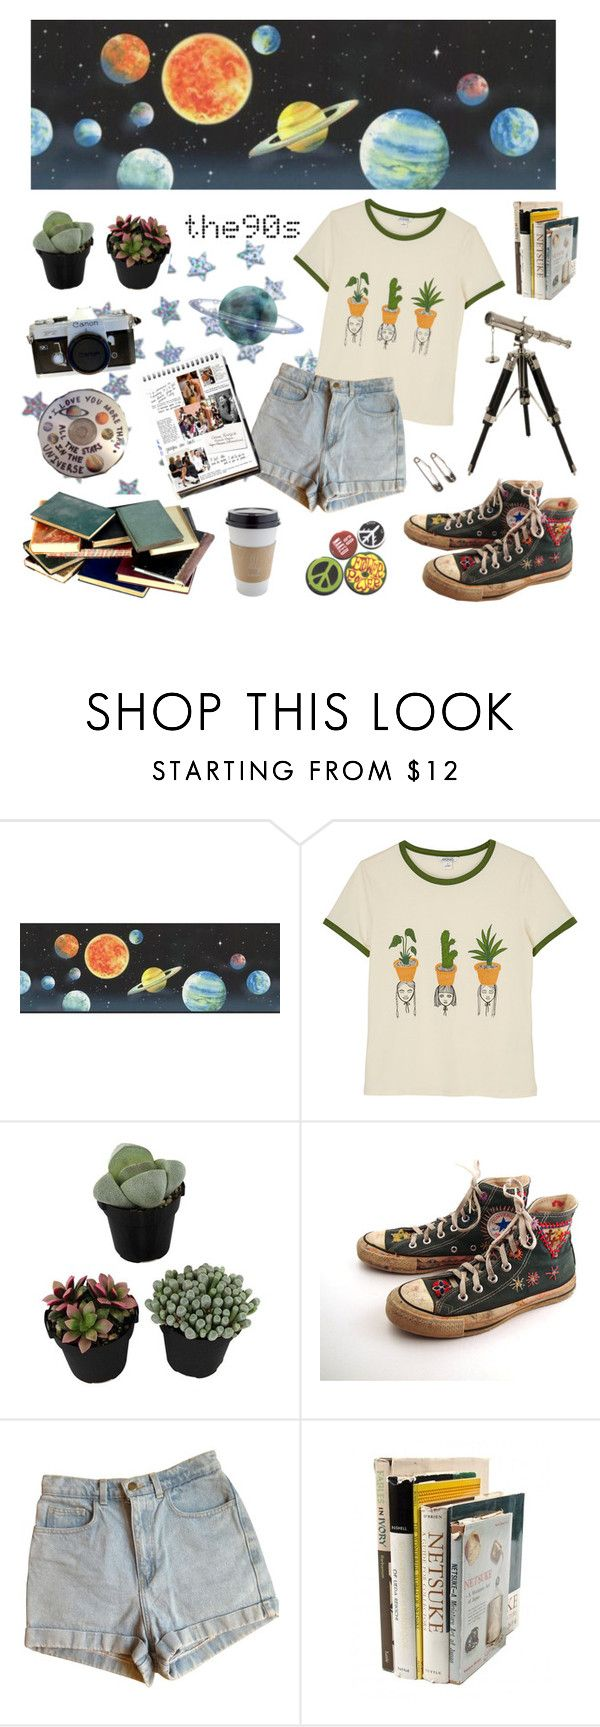 """young star lover ✩☆✩"" by lilyjey ❤ liked on Polyvore featuring York Wallcoverings, Monki, Converse, American Apparel, Garance Doré, IMAX Corporation and vintage"